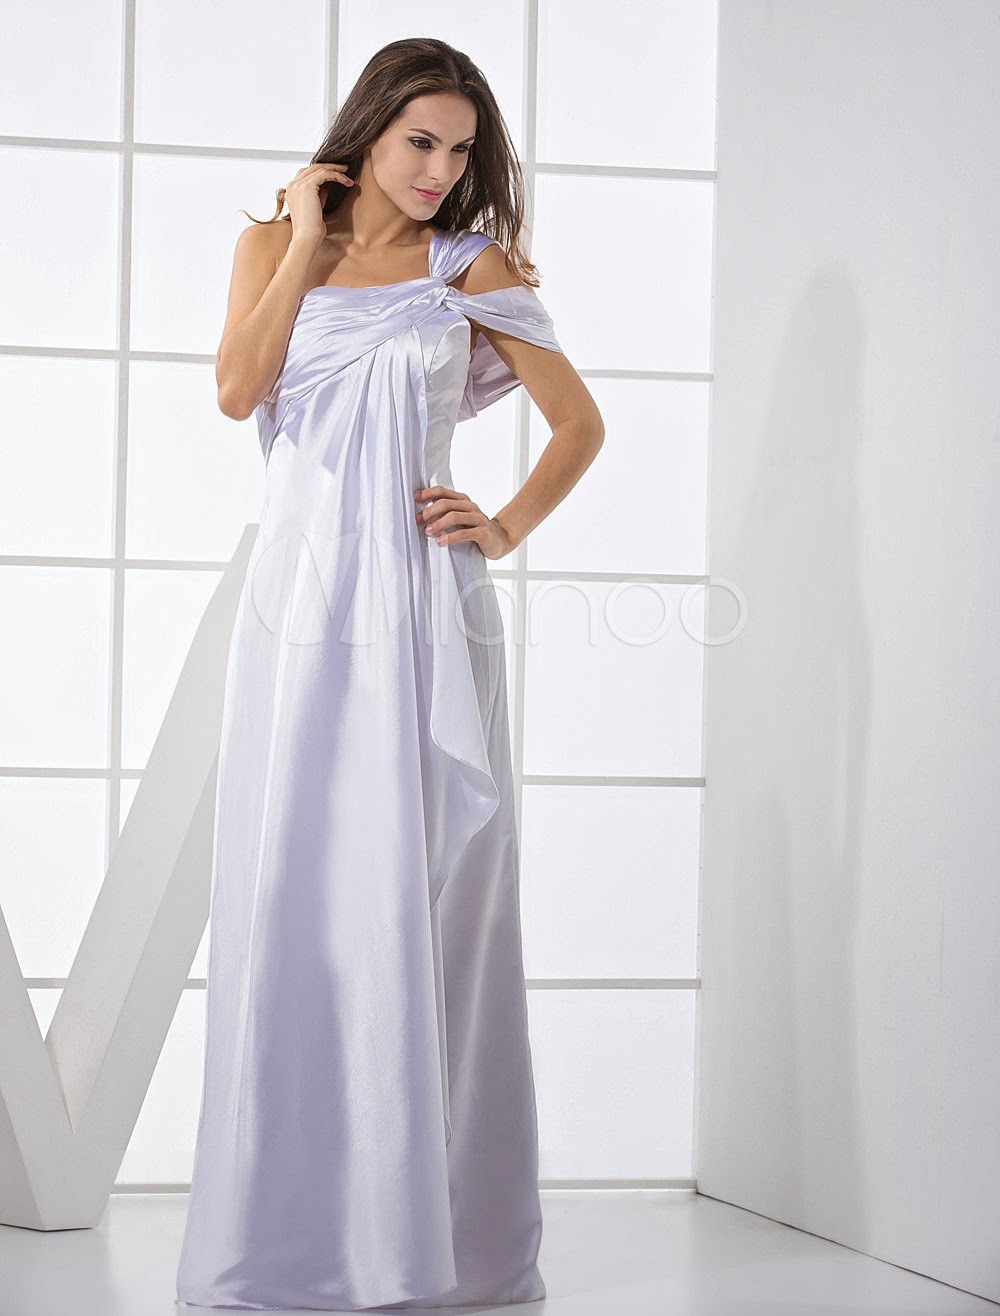 China Wholesale Dresses - Particular Ivory Elastic Woven Satin One Shoulder Prom Dress